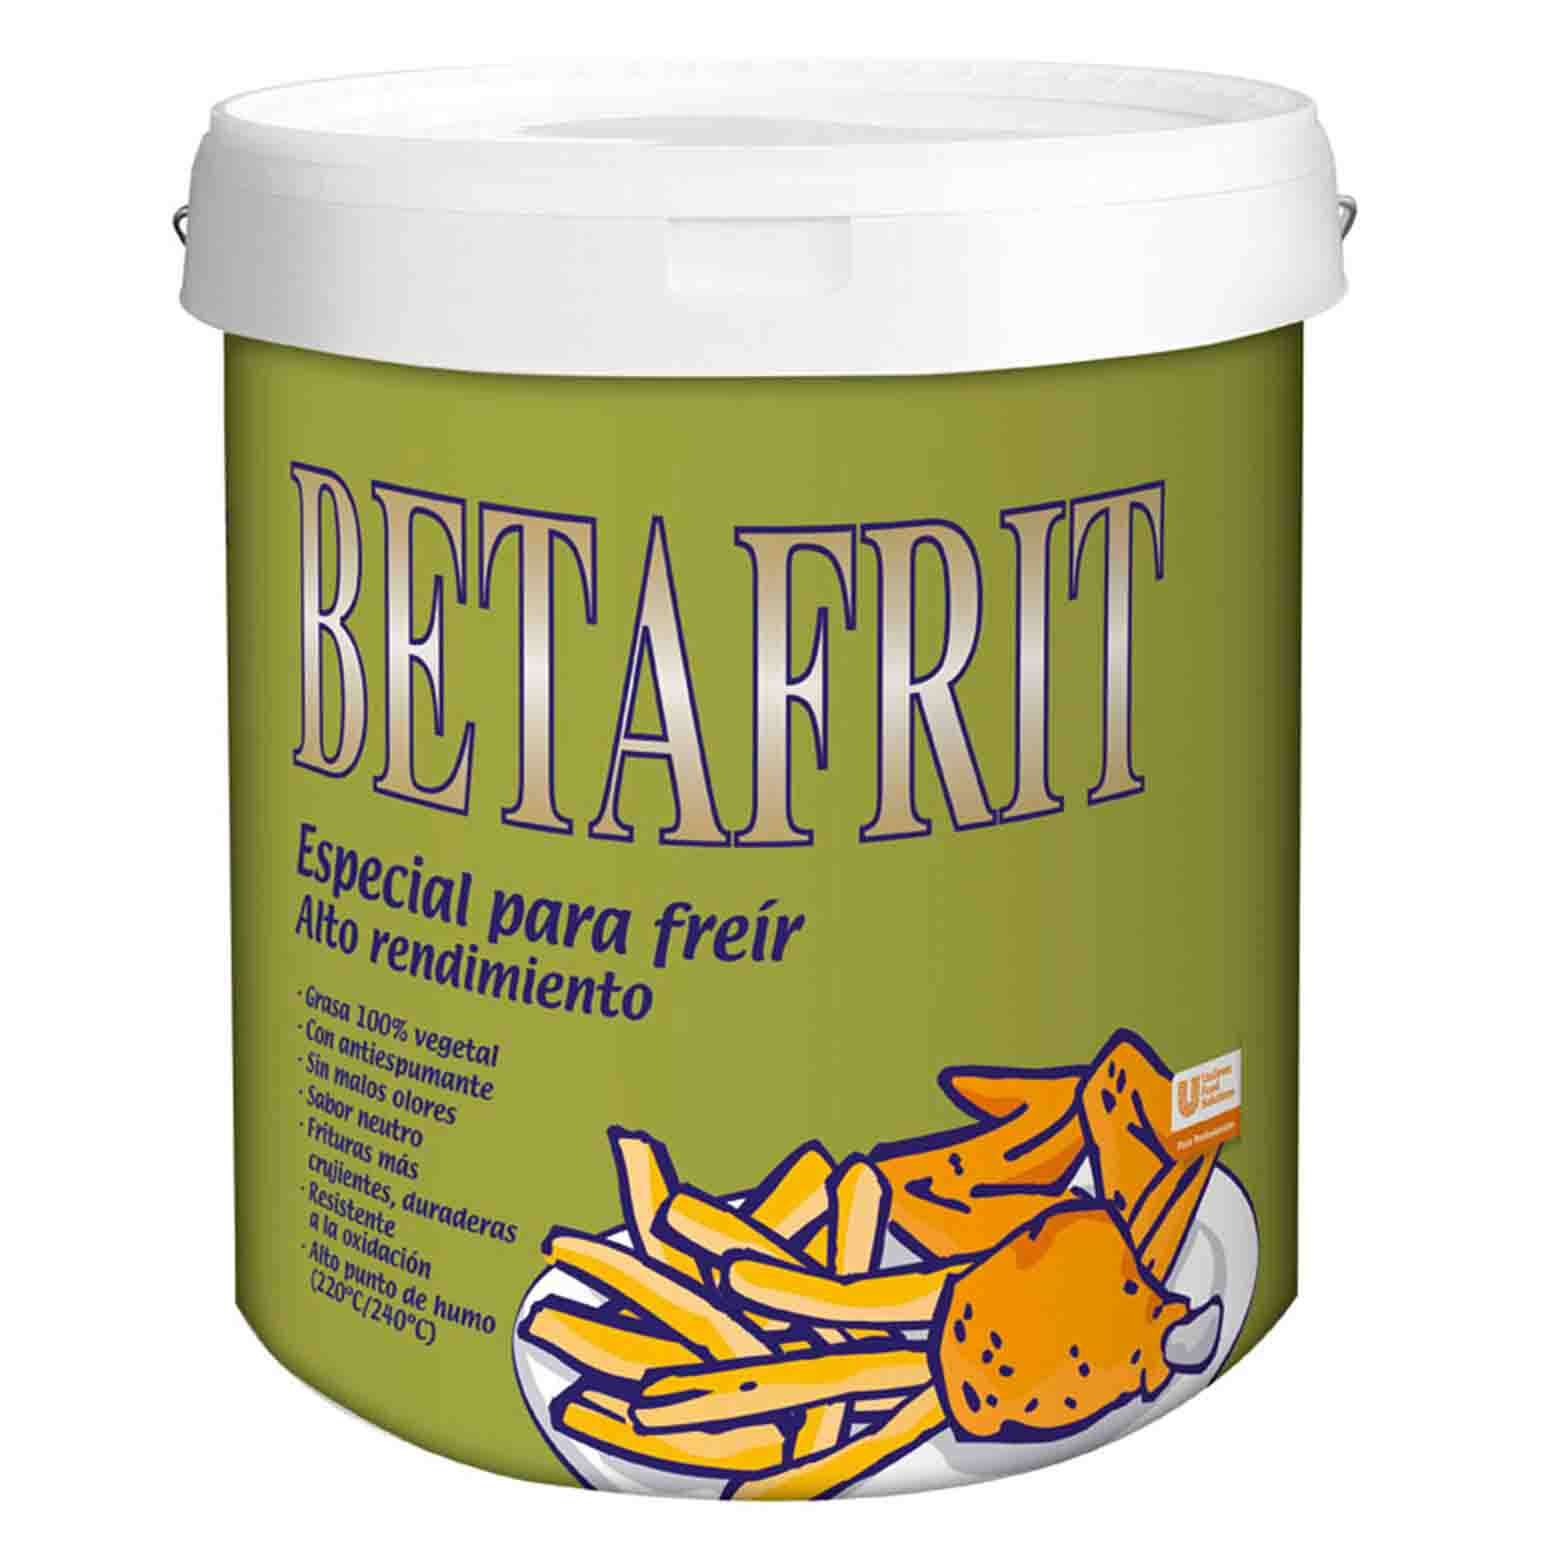 ACEITE BETA FRIT 20 L.